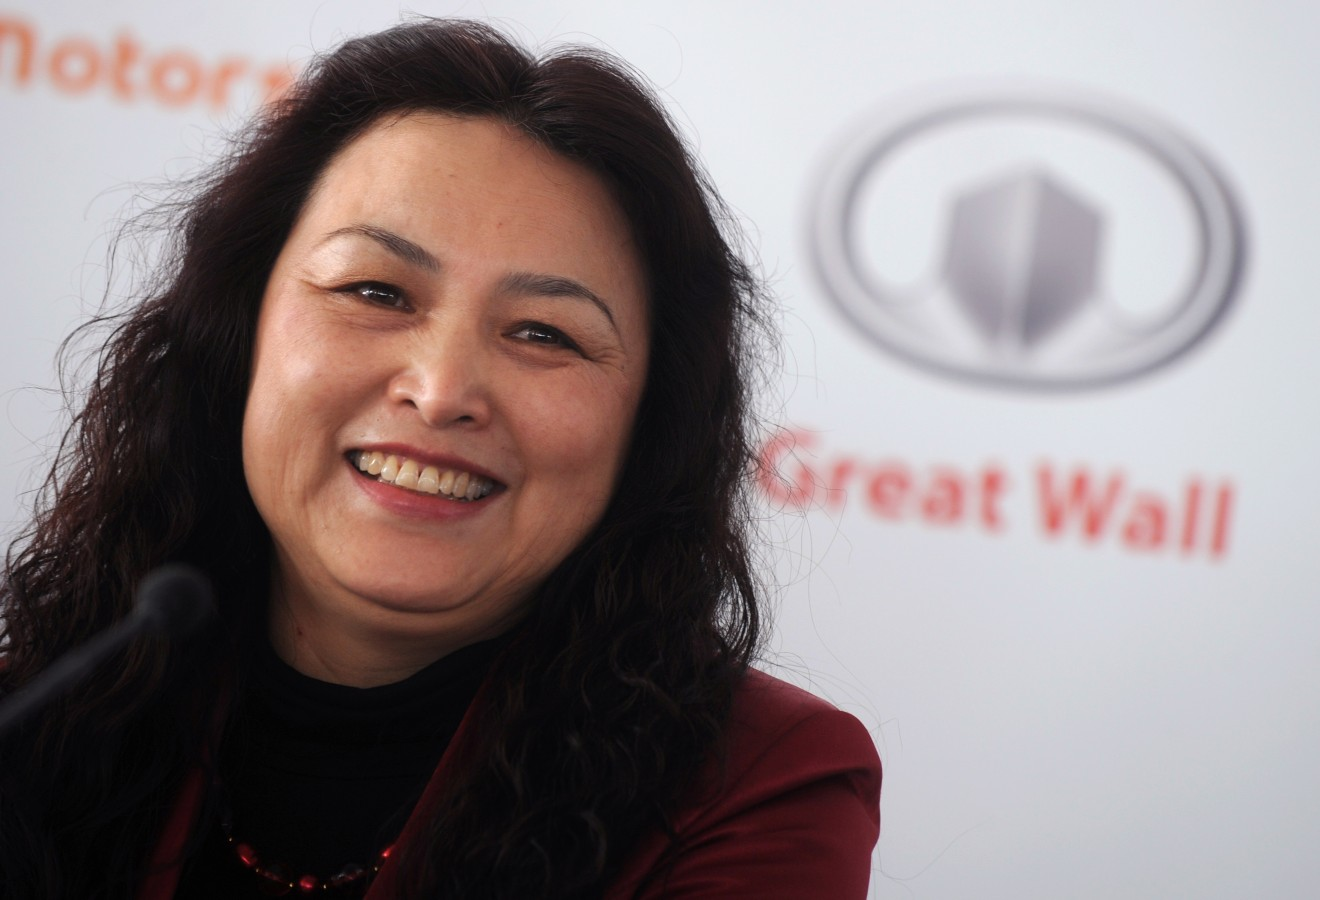 Great Wall Motor chief executive Wang Fe